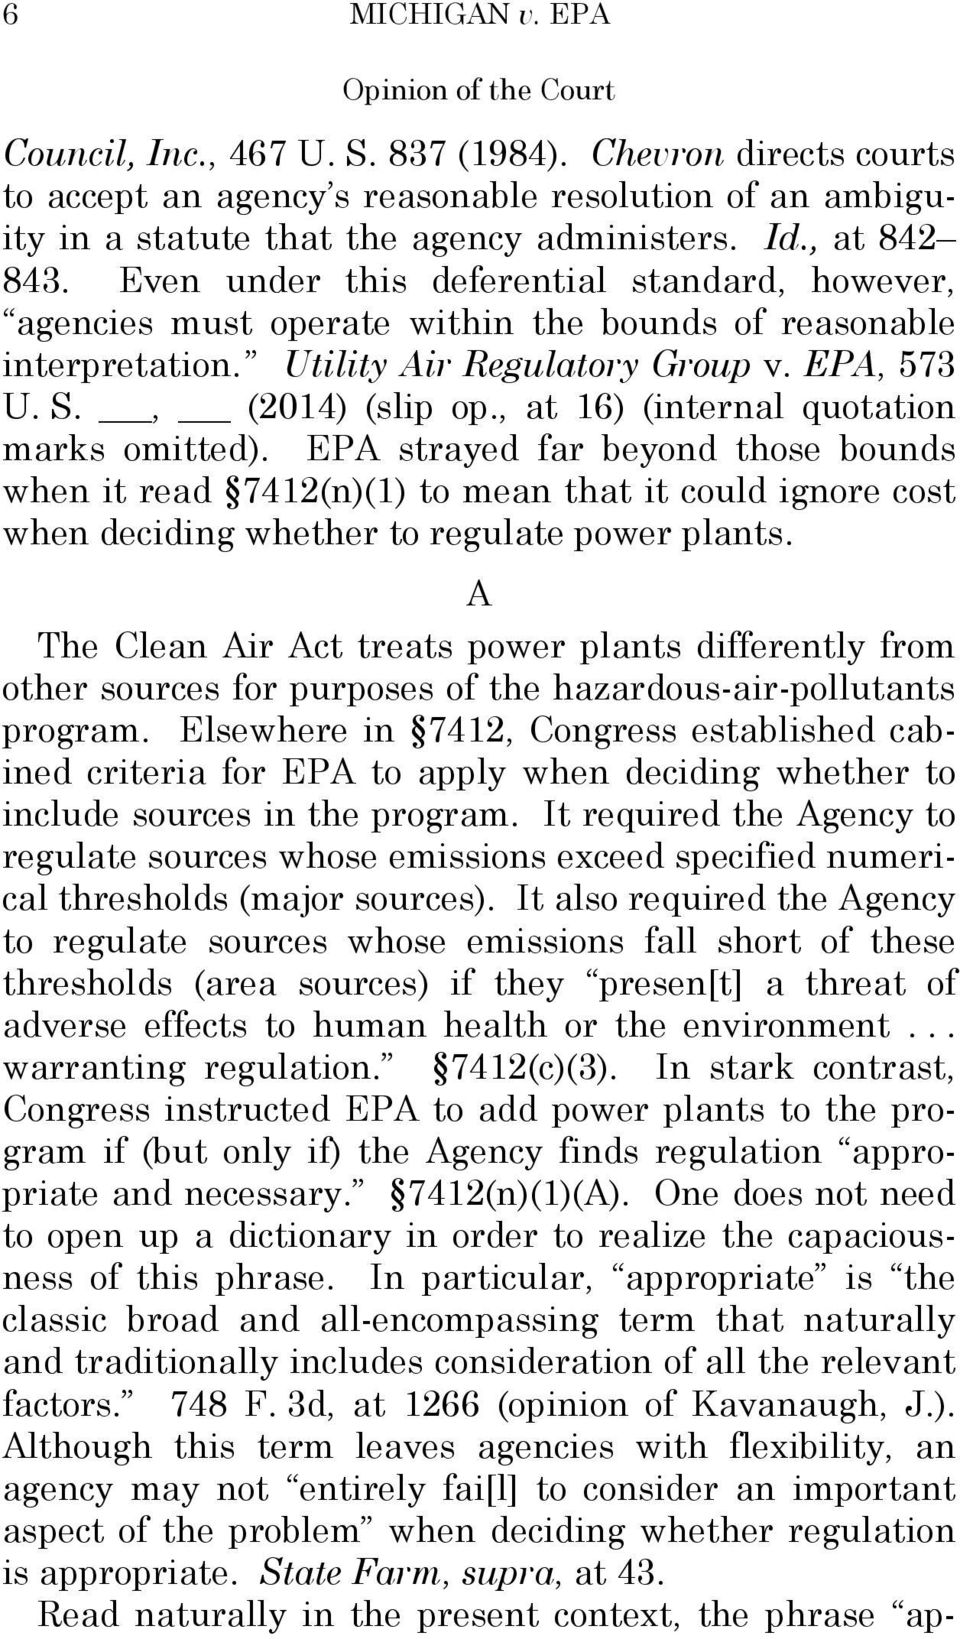 , at 16) (internal quotation marks omitted). EPA strayed far beyond those bounds when it read 7412(n)(1) to mean that it could ignore cost when deciding whether to regulate power plants.